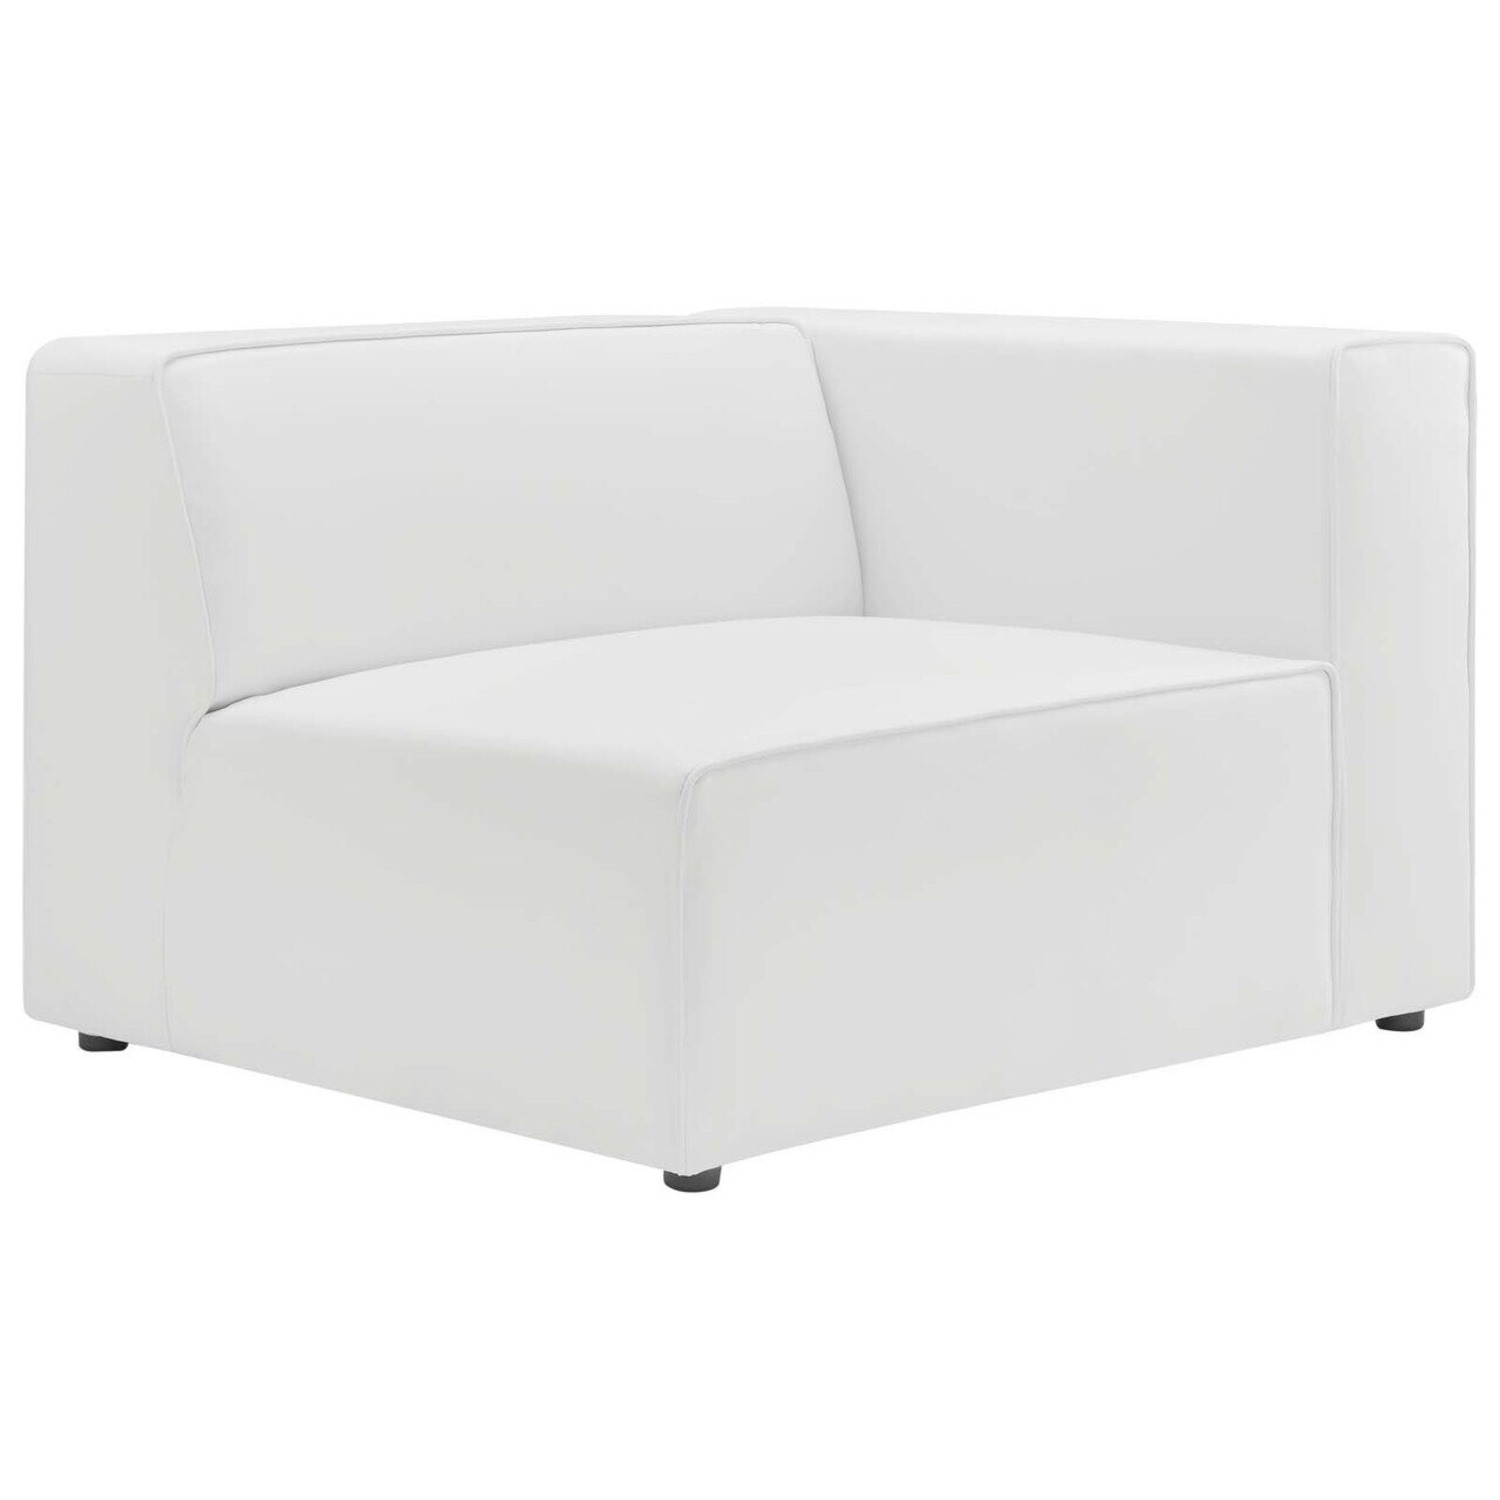 2-Piece Sectional Sofa In White Leather Finish - image-6